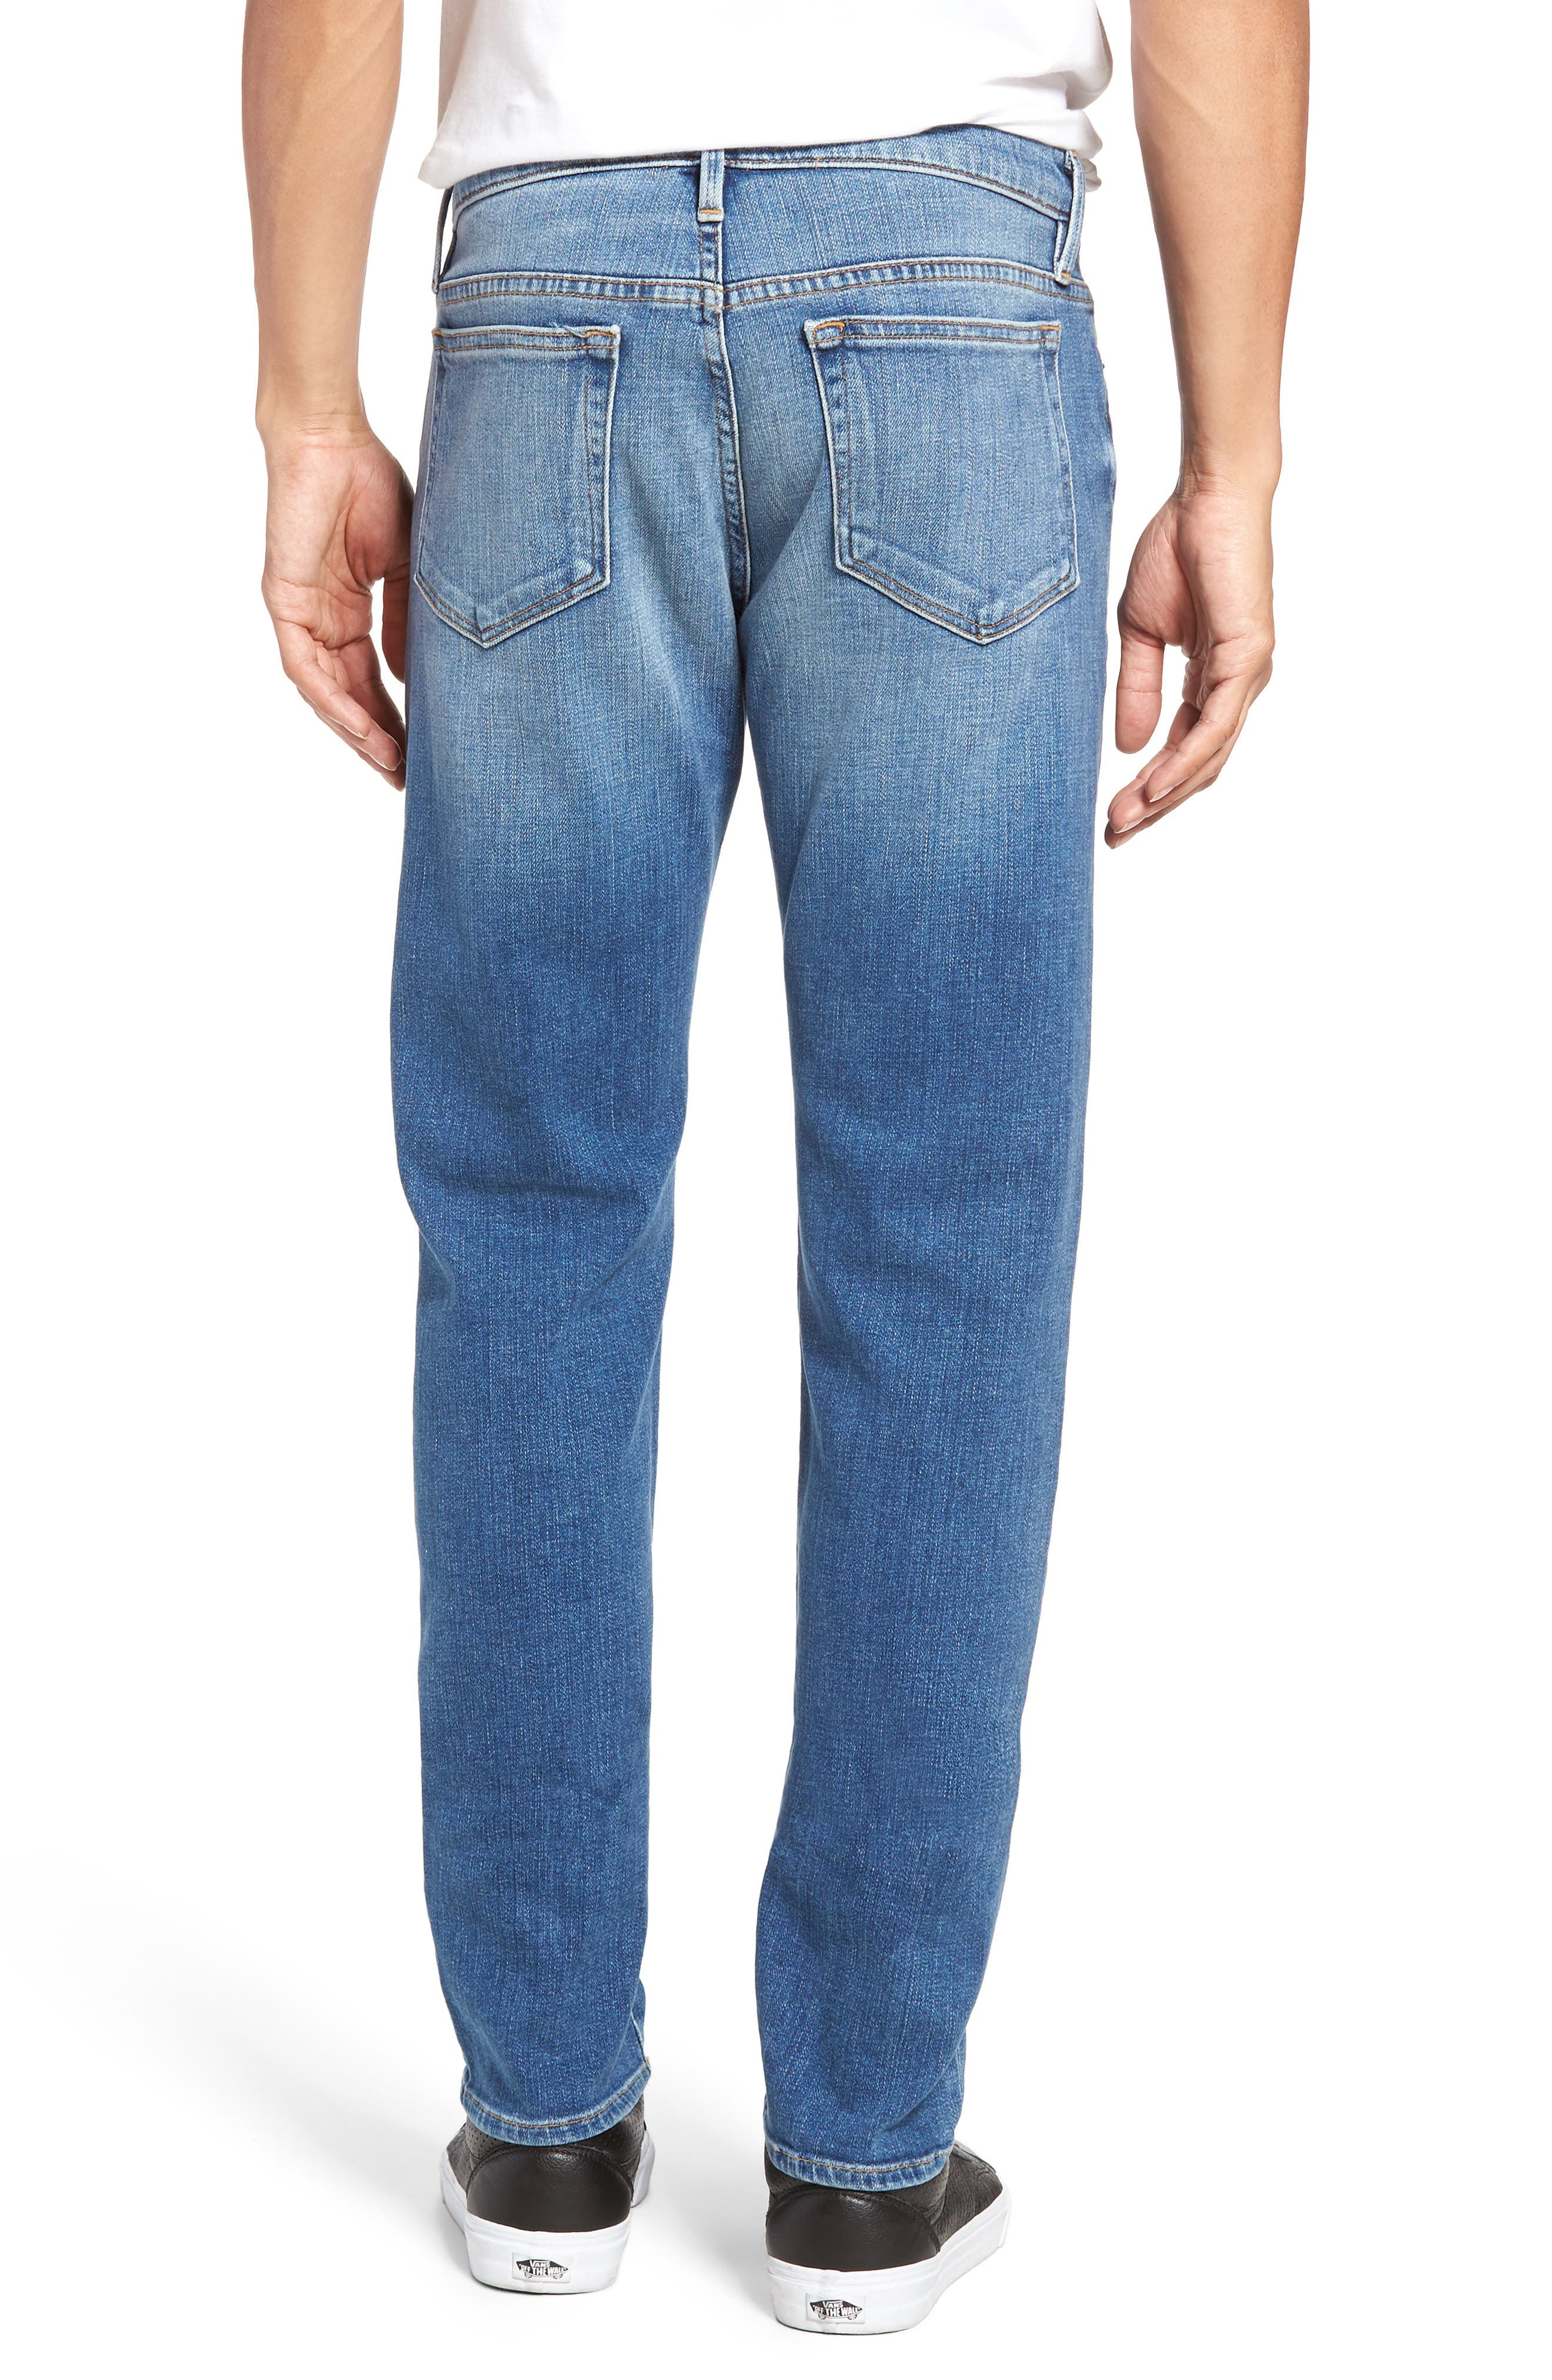 L'Homme Slim Fit Jeans,                             Alternate thumbnail 2, color,